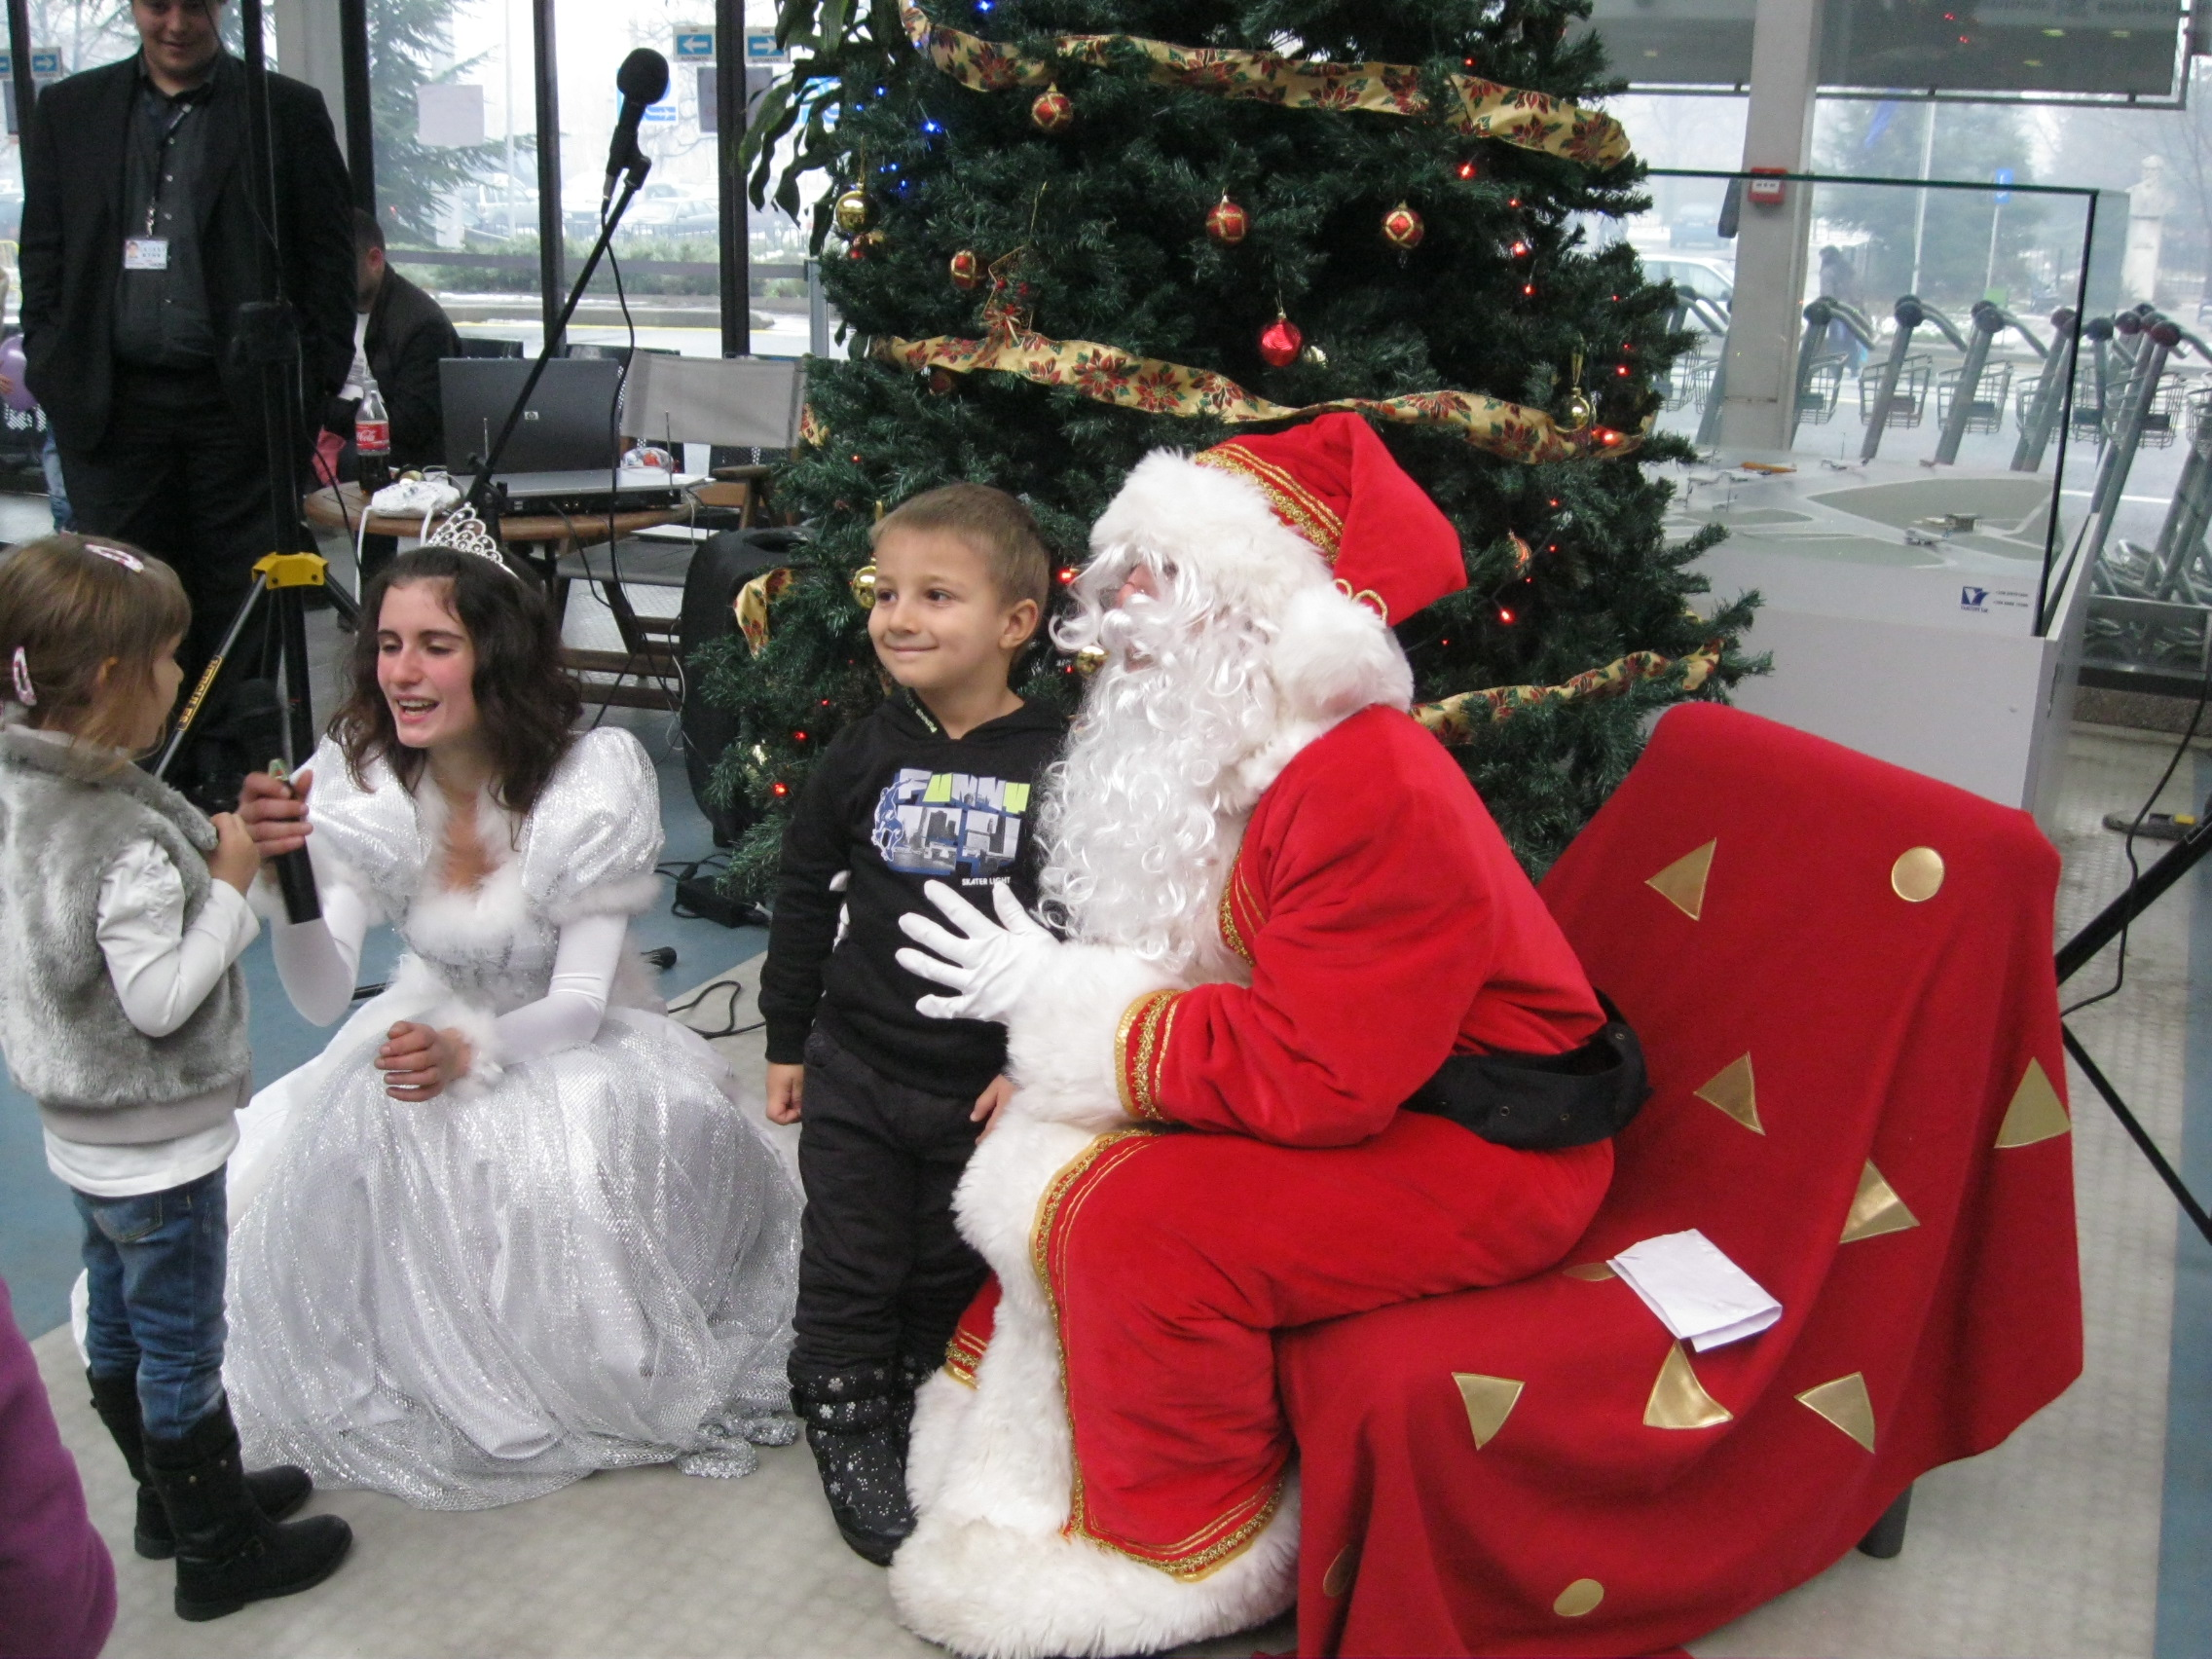 Santa Claus arrived by helicopter at Sofia Airport